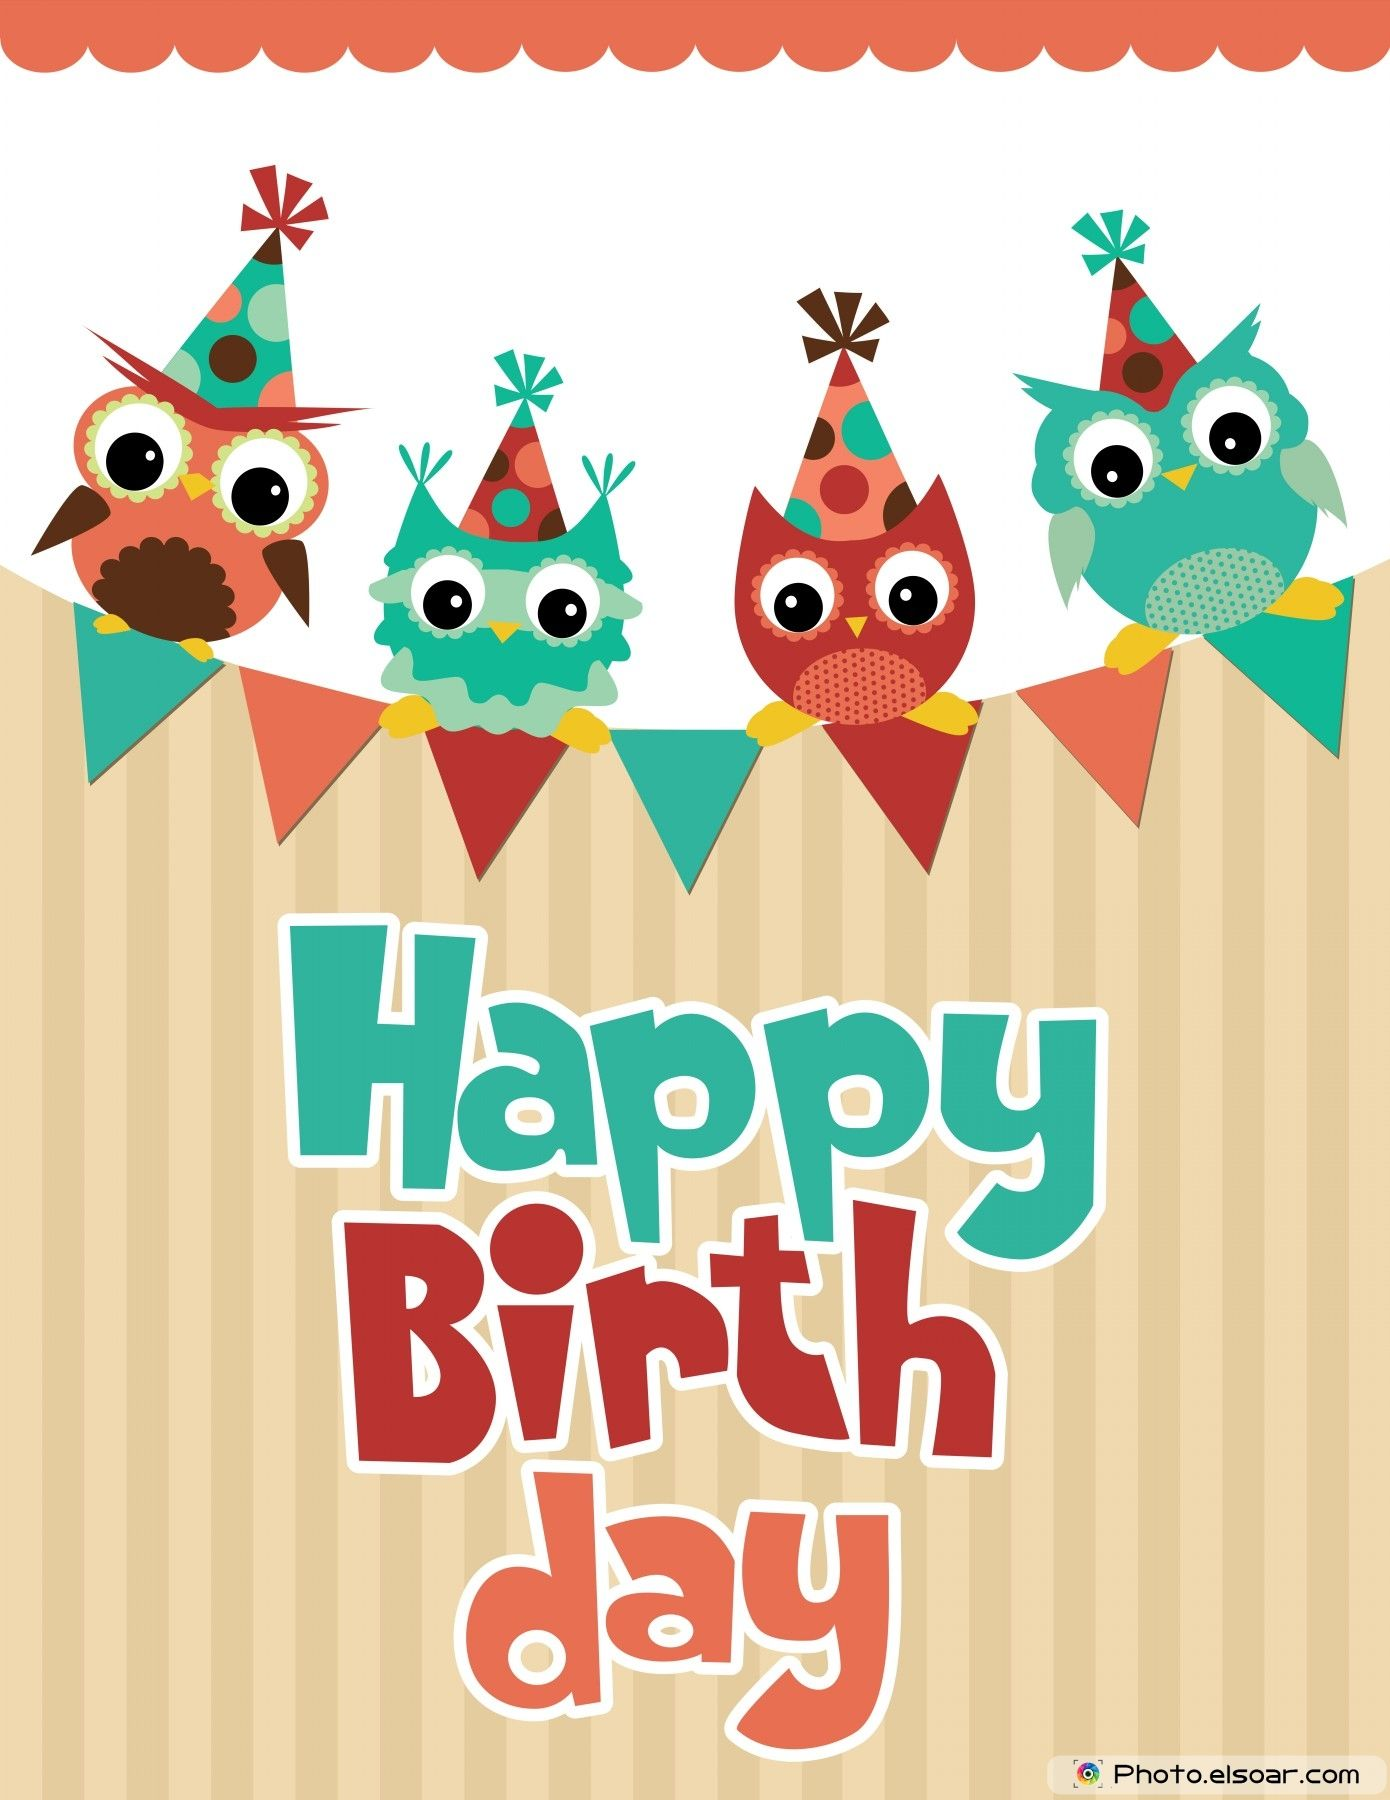 Happy Birthday card design with funny angry owl – Unique Happy Birthday Greetings